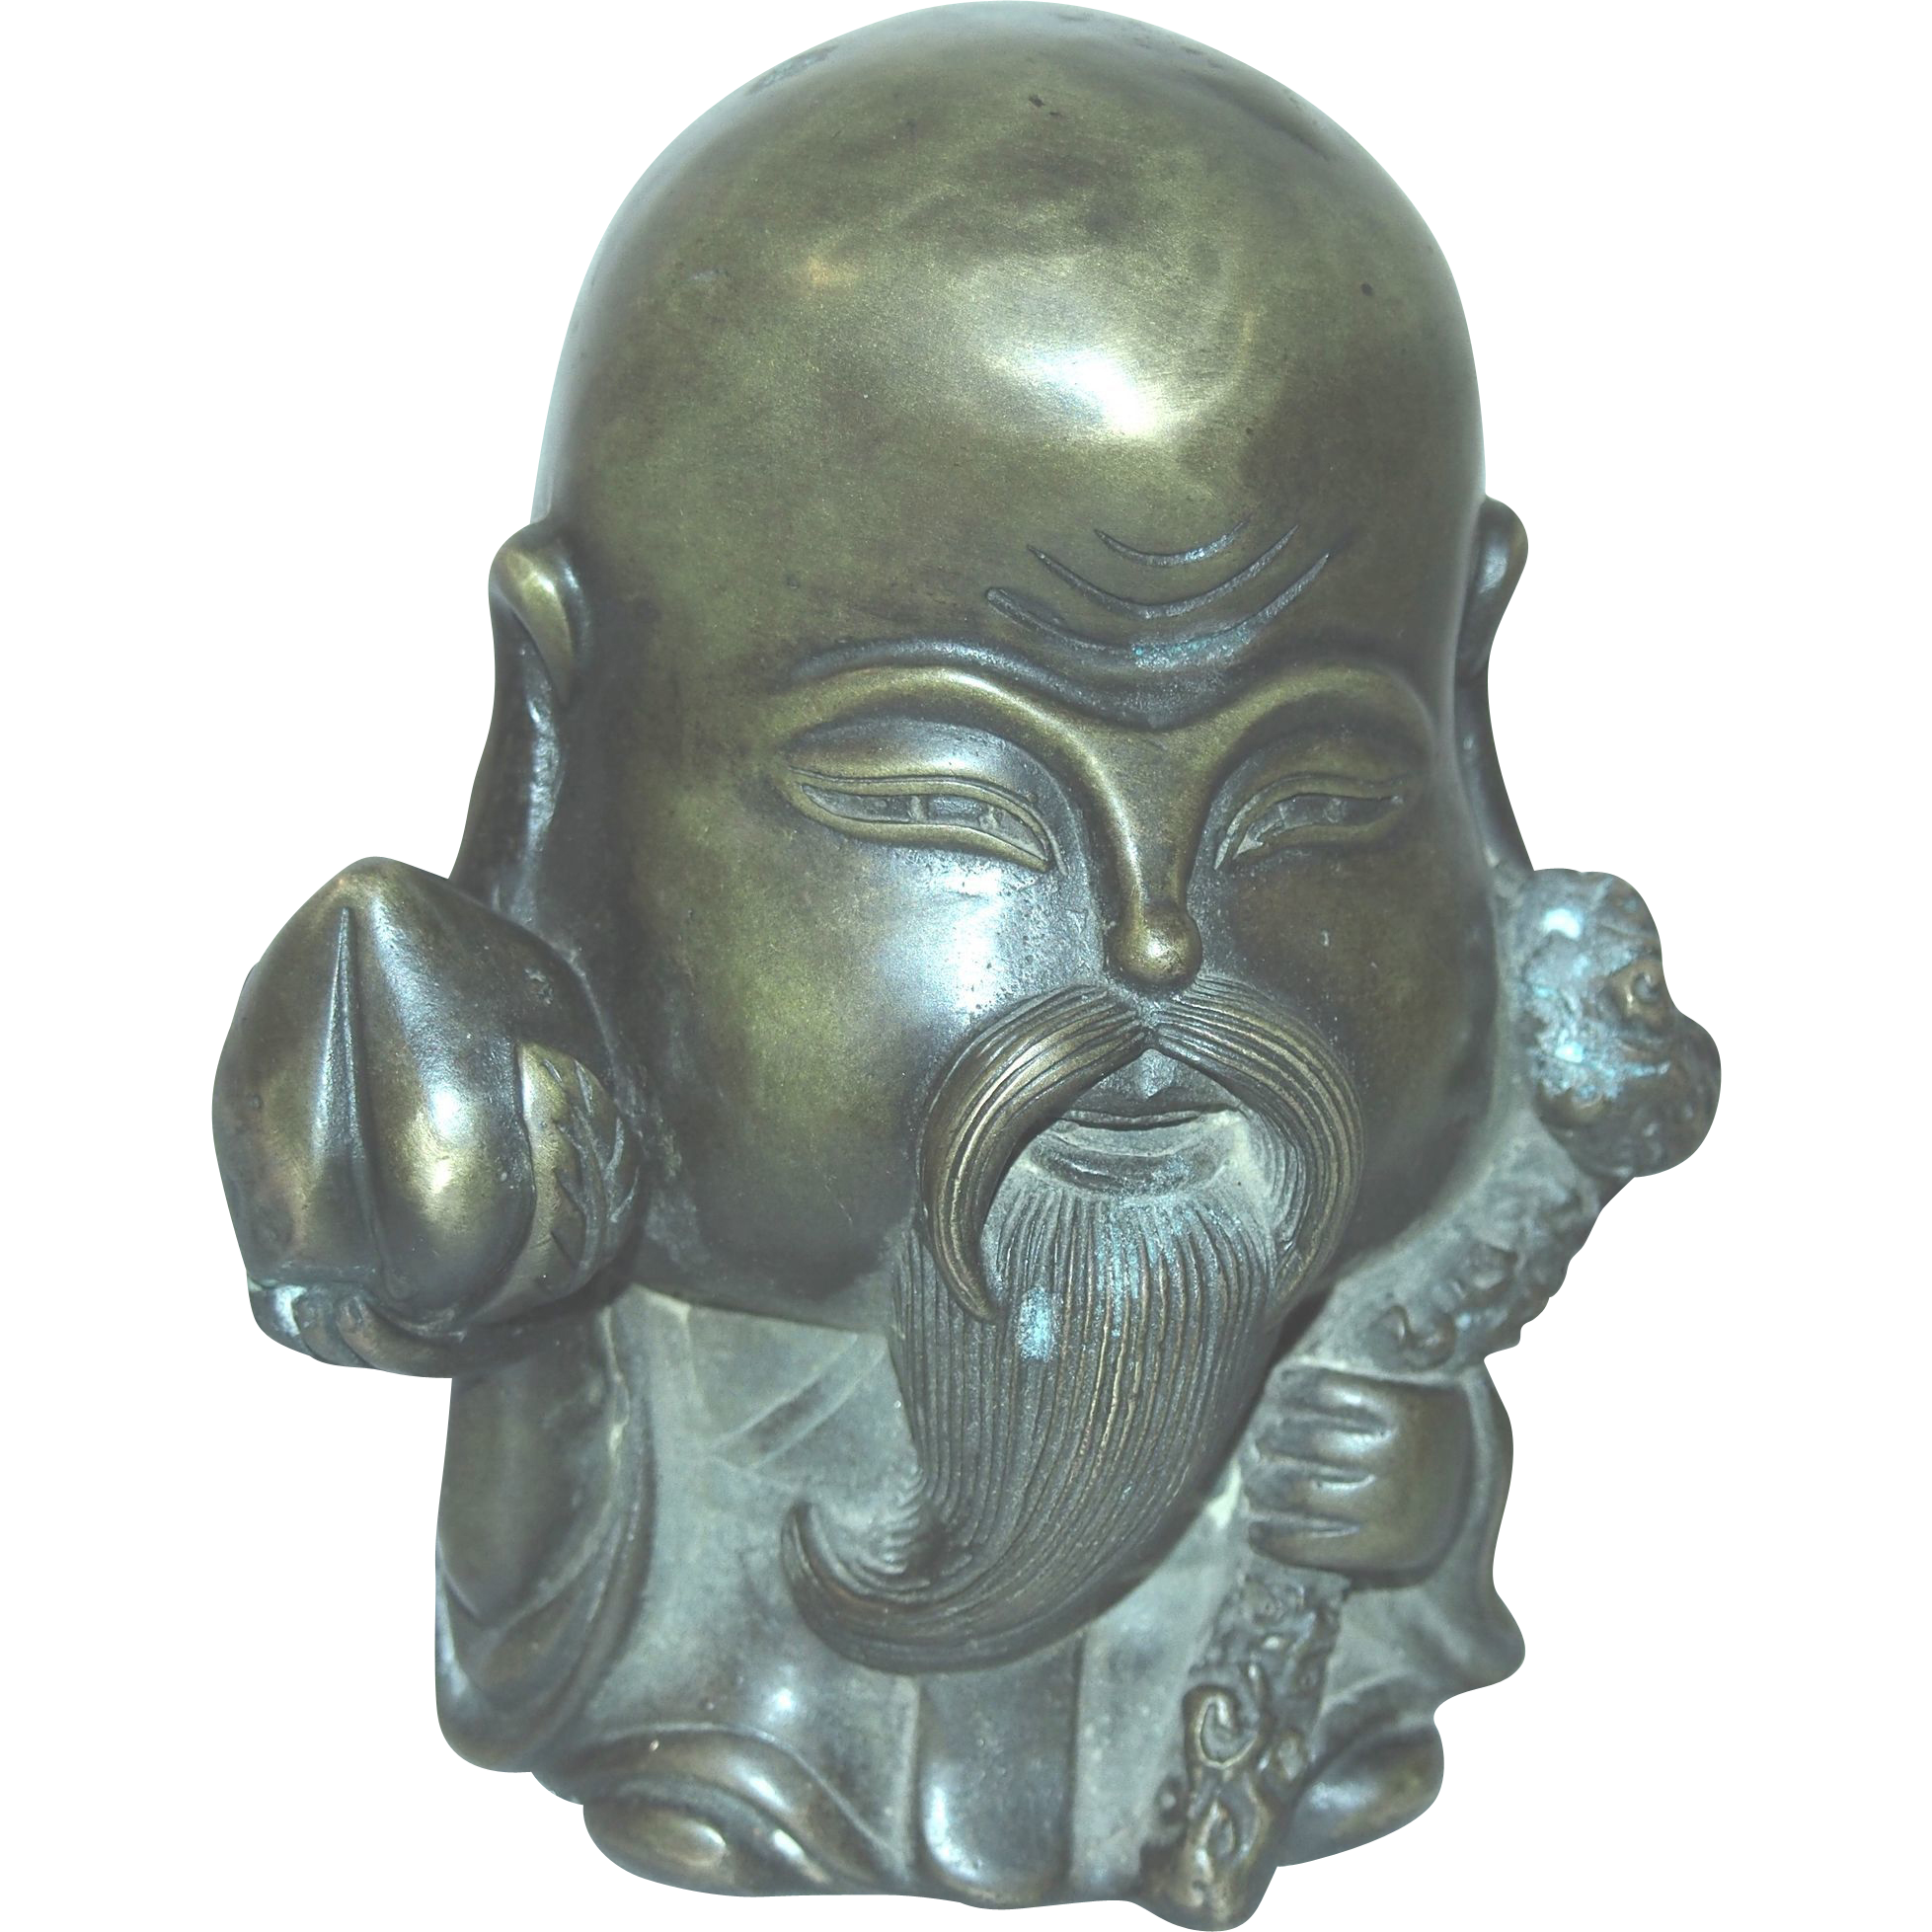 Chinese Bronze Statue or Paperweight Of Taoism Deity of Longevity